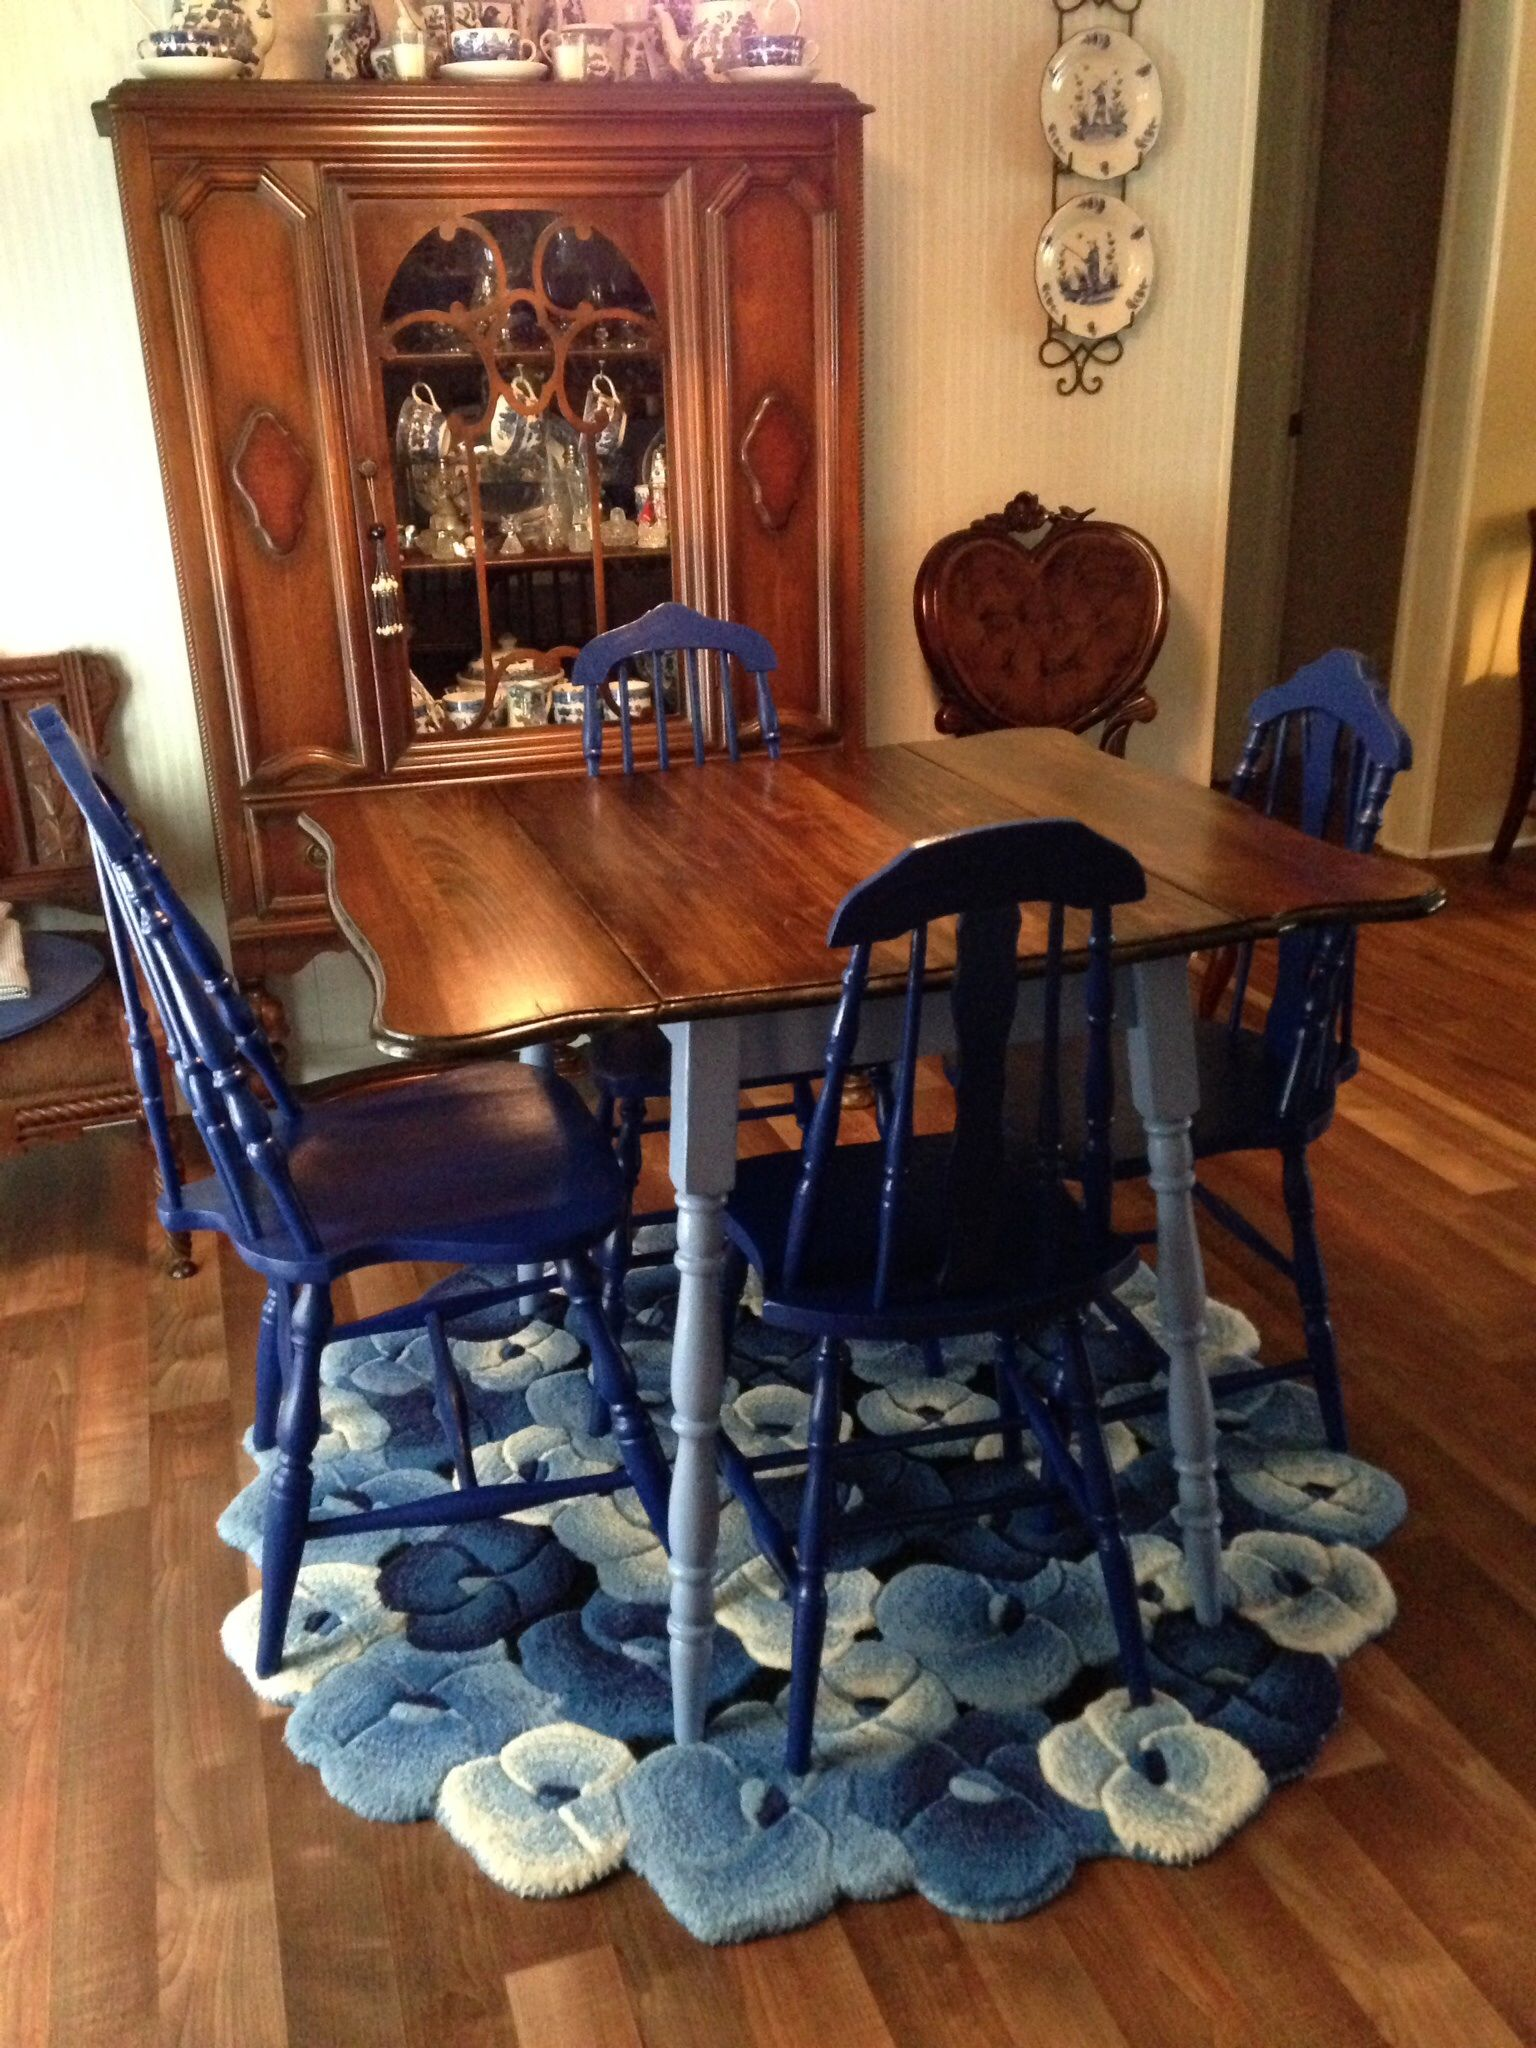 My Antique 1930 S Drop Leaf Table Chairs That I Refinished To Match My Blue Willow Dining Room Redo Furniture Refinished Table Blue Willow Dining Room